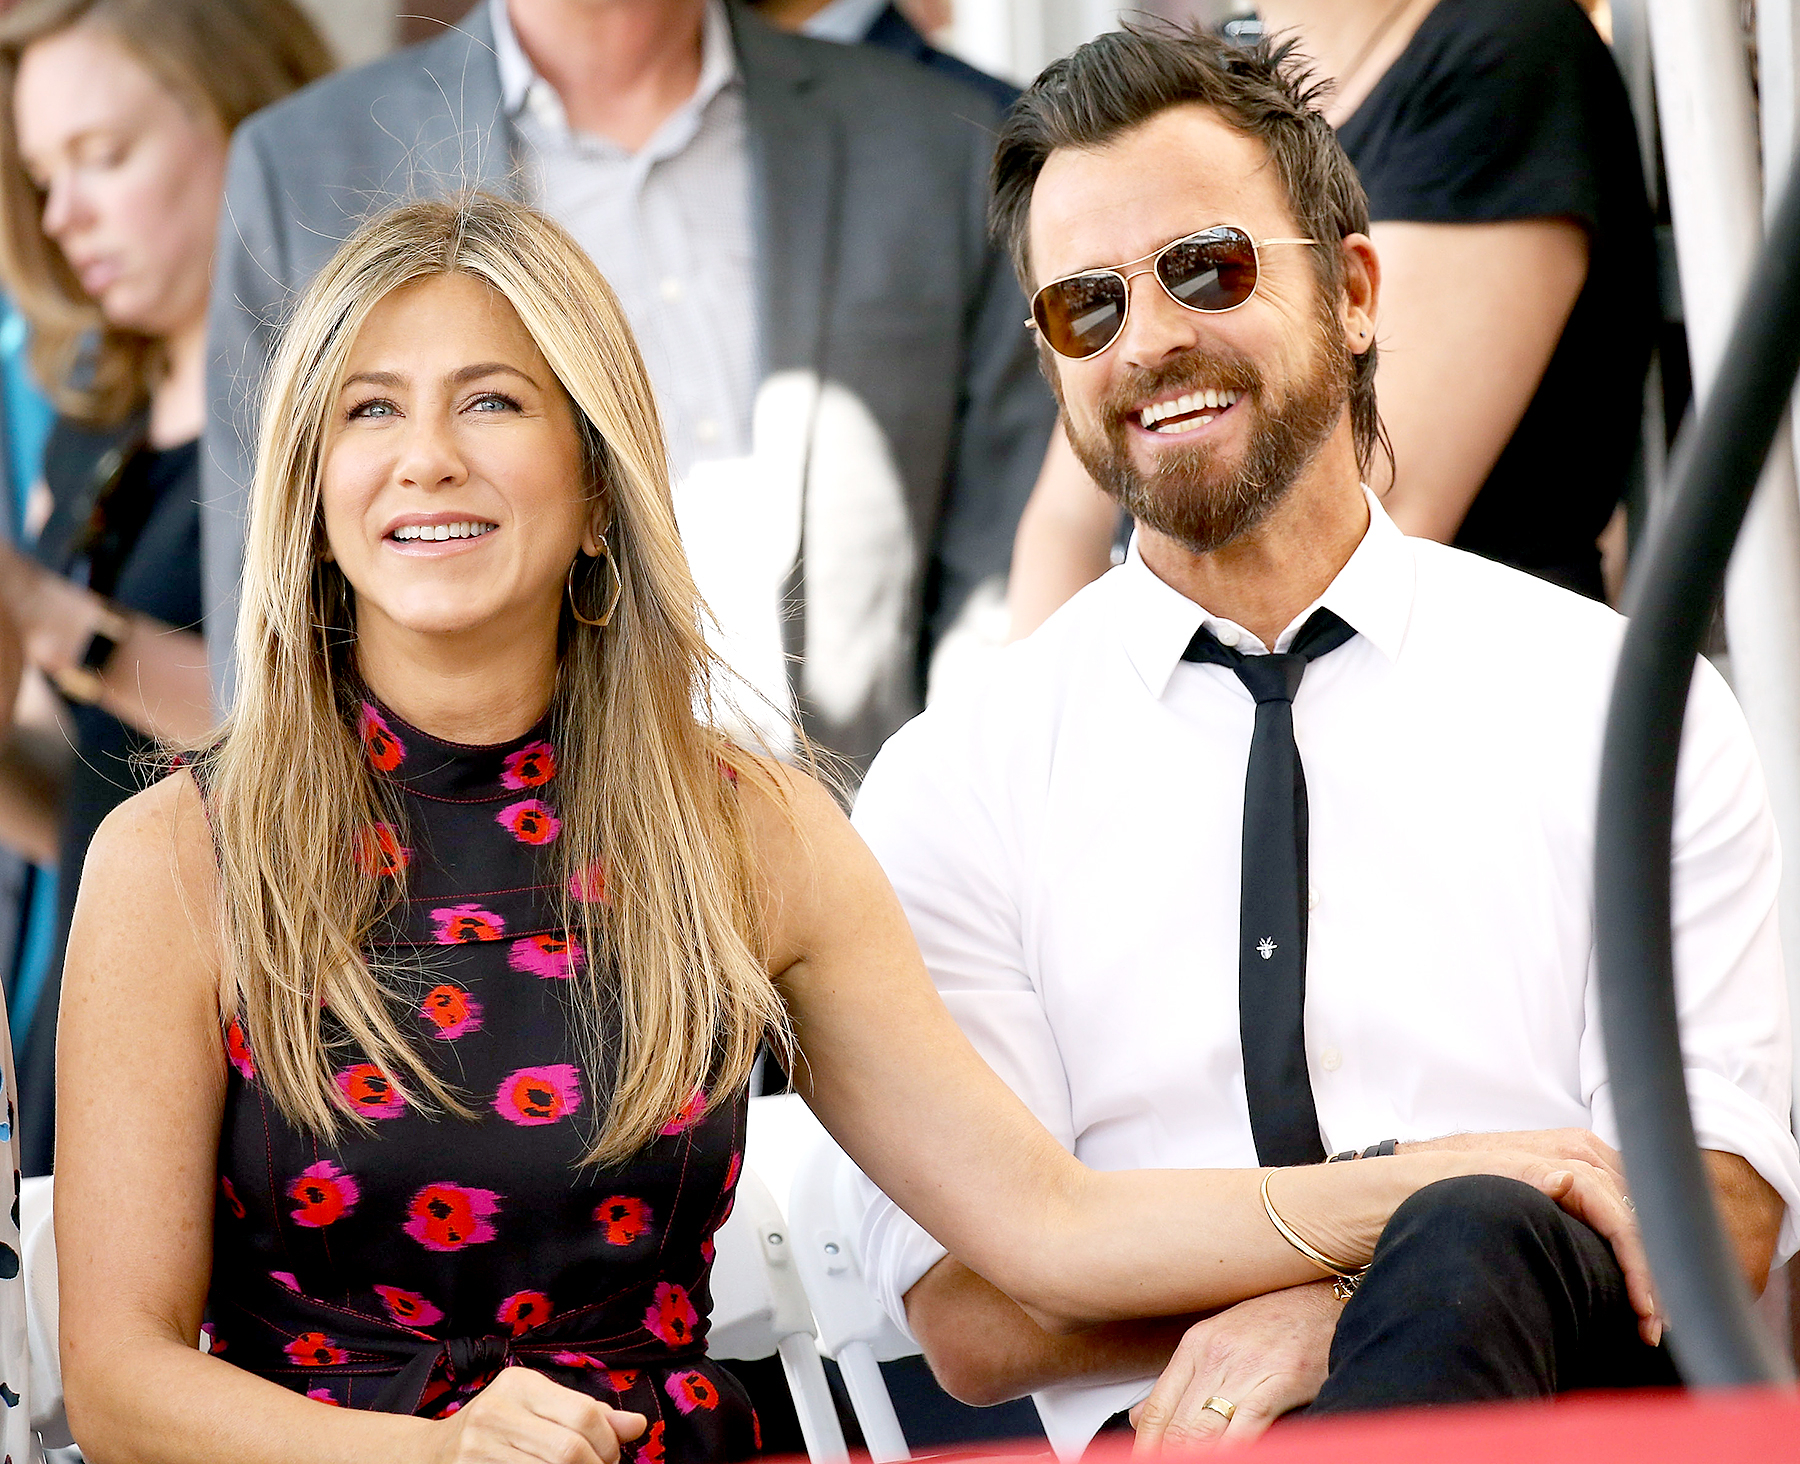 Jennifer Aniston and Justin Theroux attend the ceremony honoring Jason Bateman with a Star on The Hollywood Walk of Fame held on July 26, 2017 in Hollywood, California.